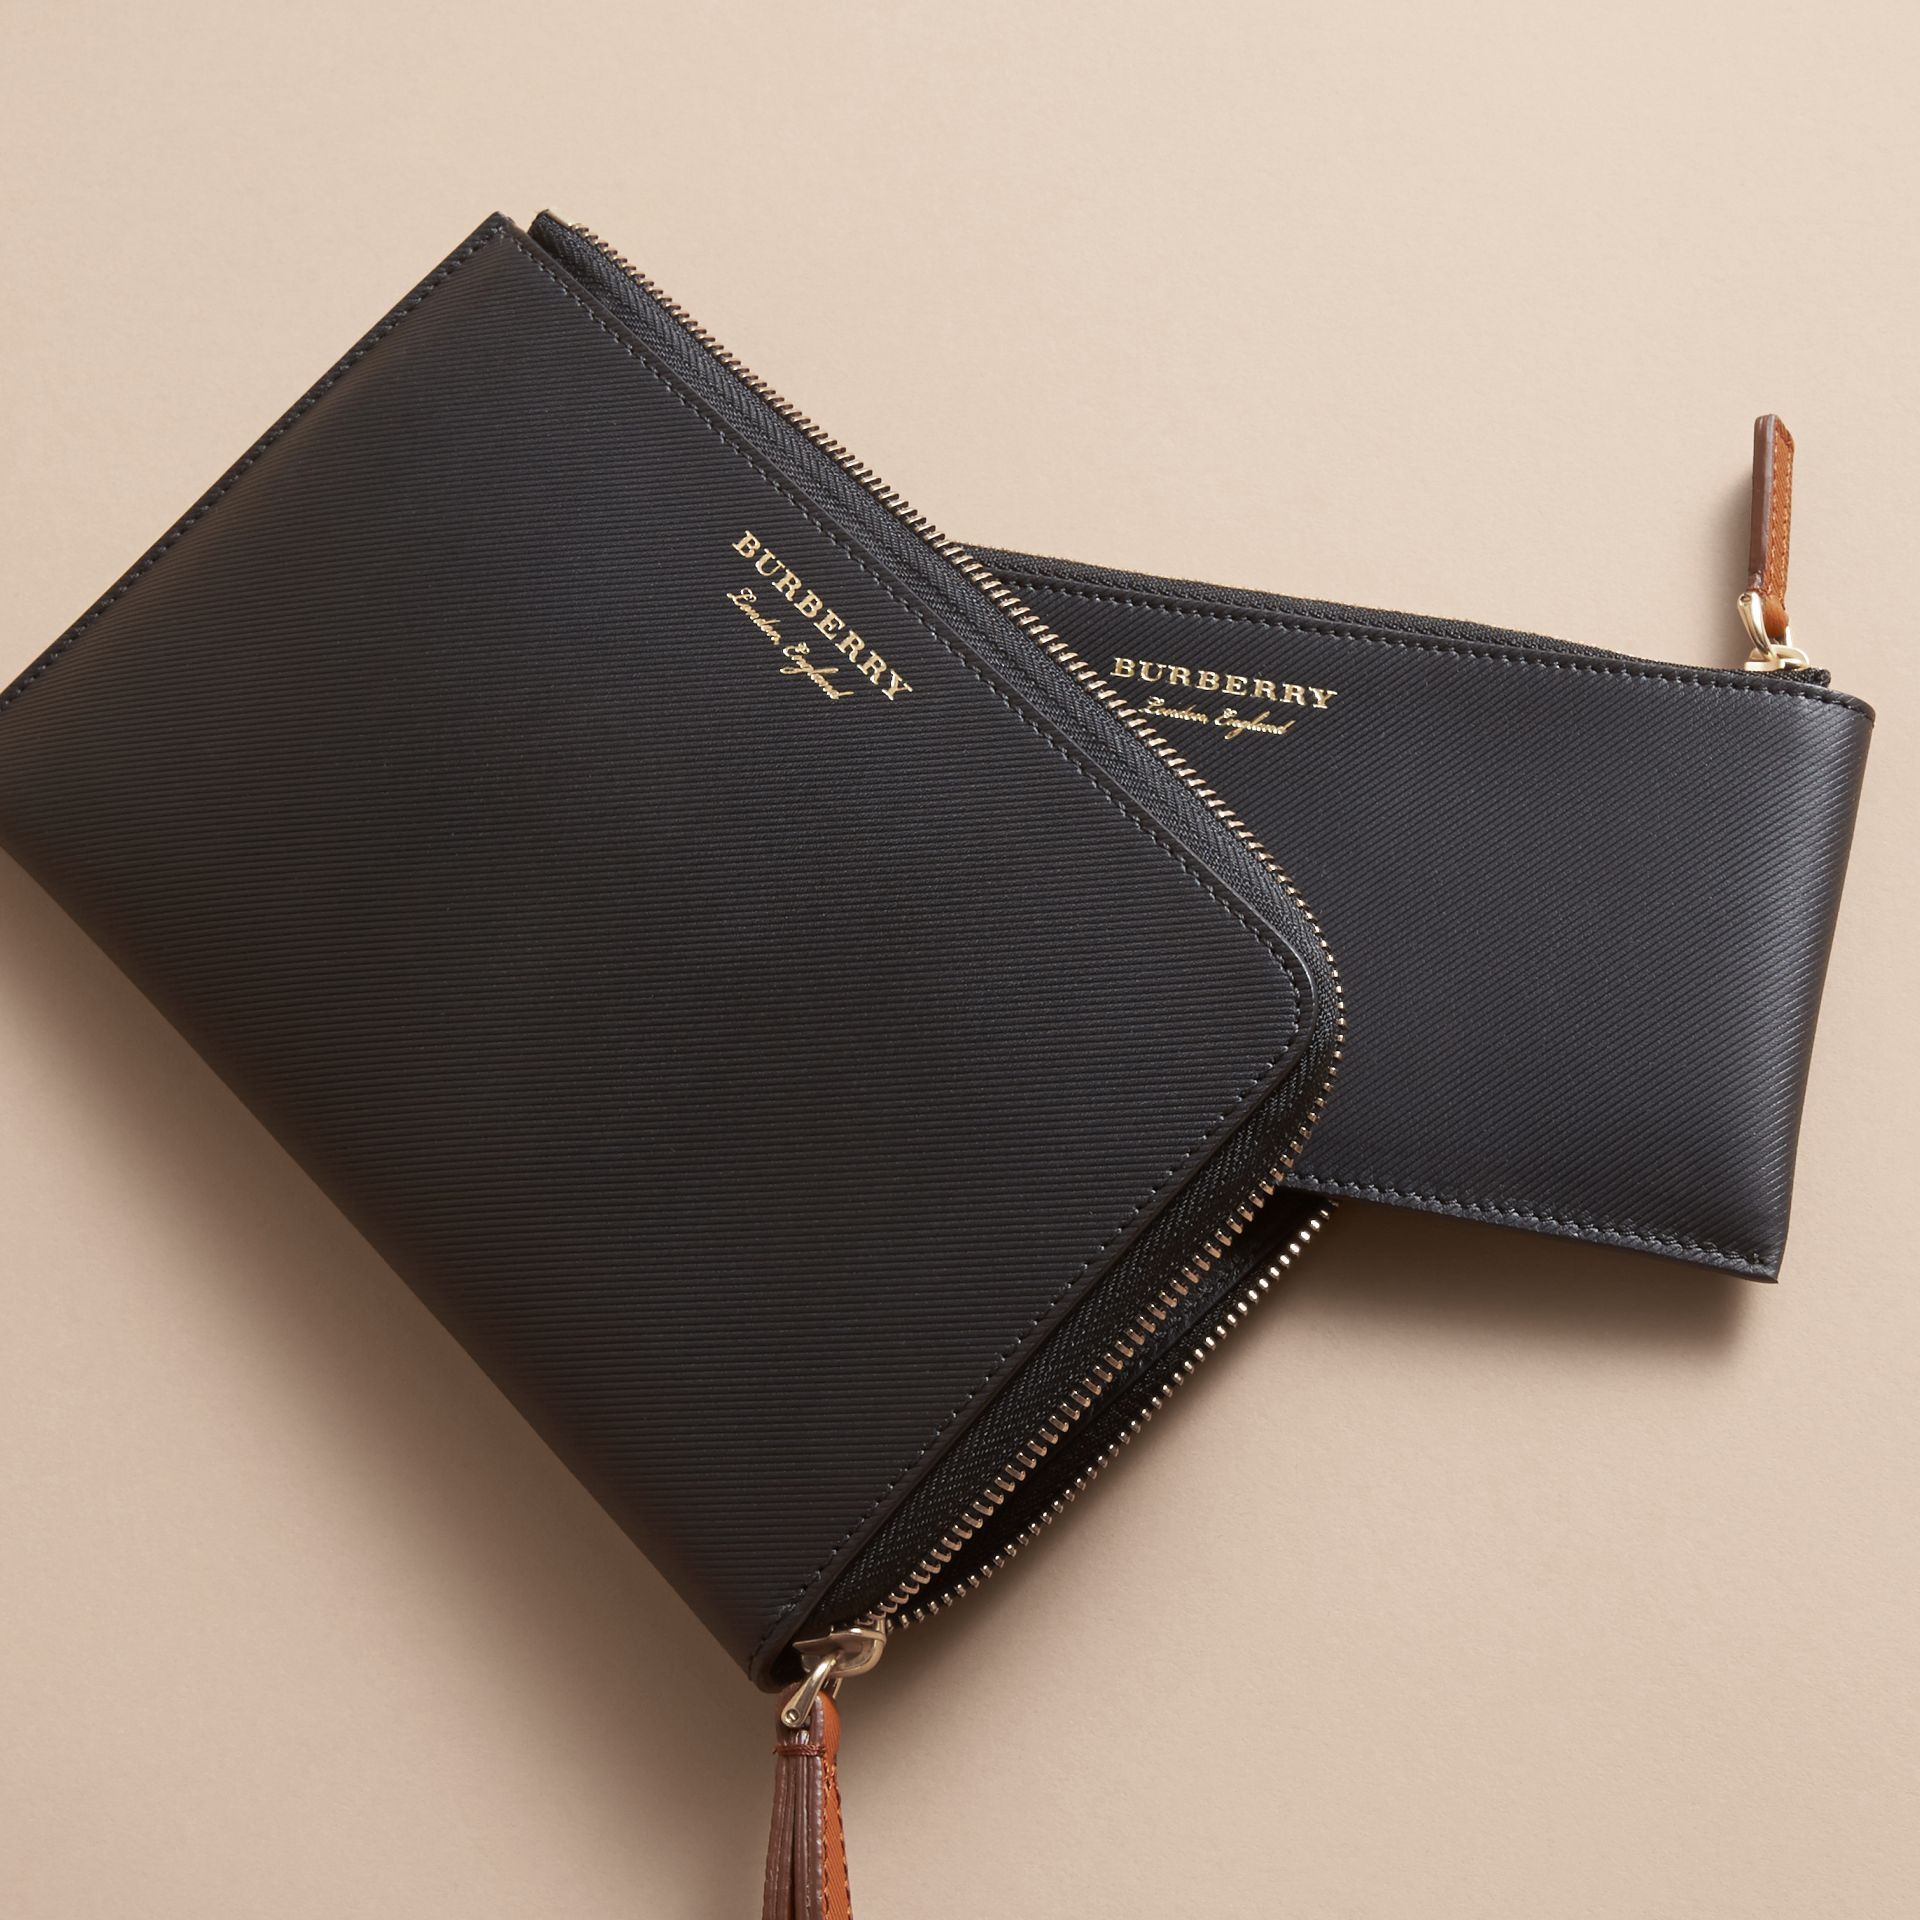 Two-tone Trench Leather Travel Wallet in Black - Men | Burberry Hong Kong - gallery image 4